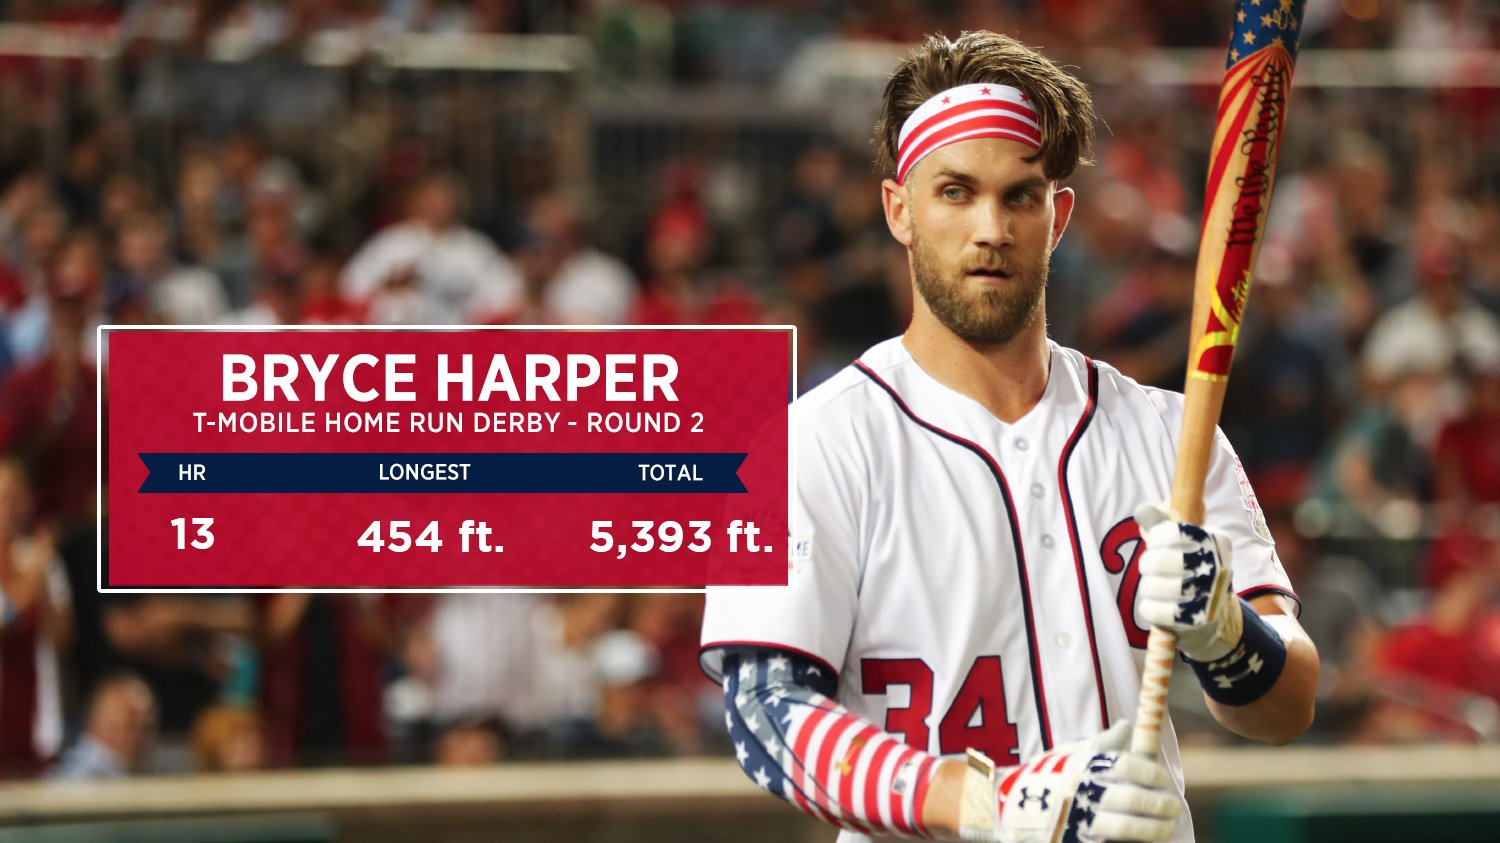 Bryce Harper hit *another mile* of HRs in Round 2. #HRDerby https://t.co/6klsZvhw3A